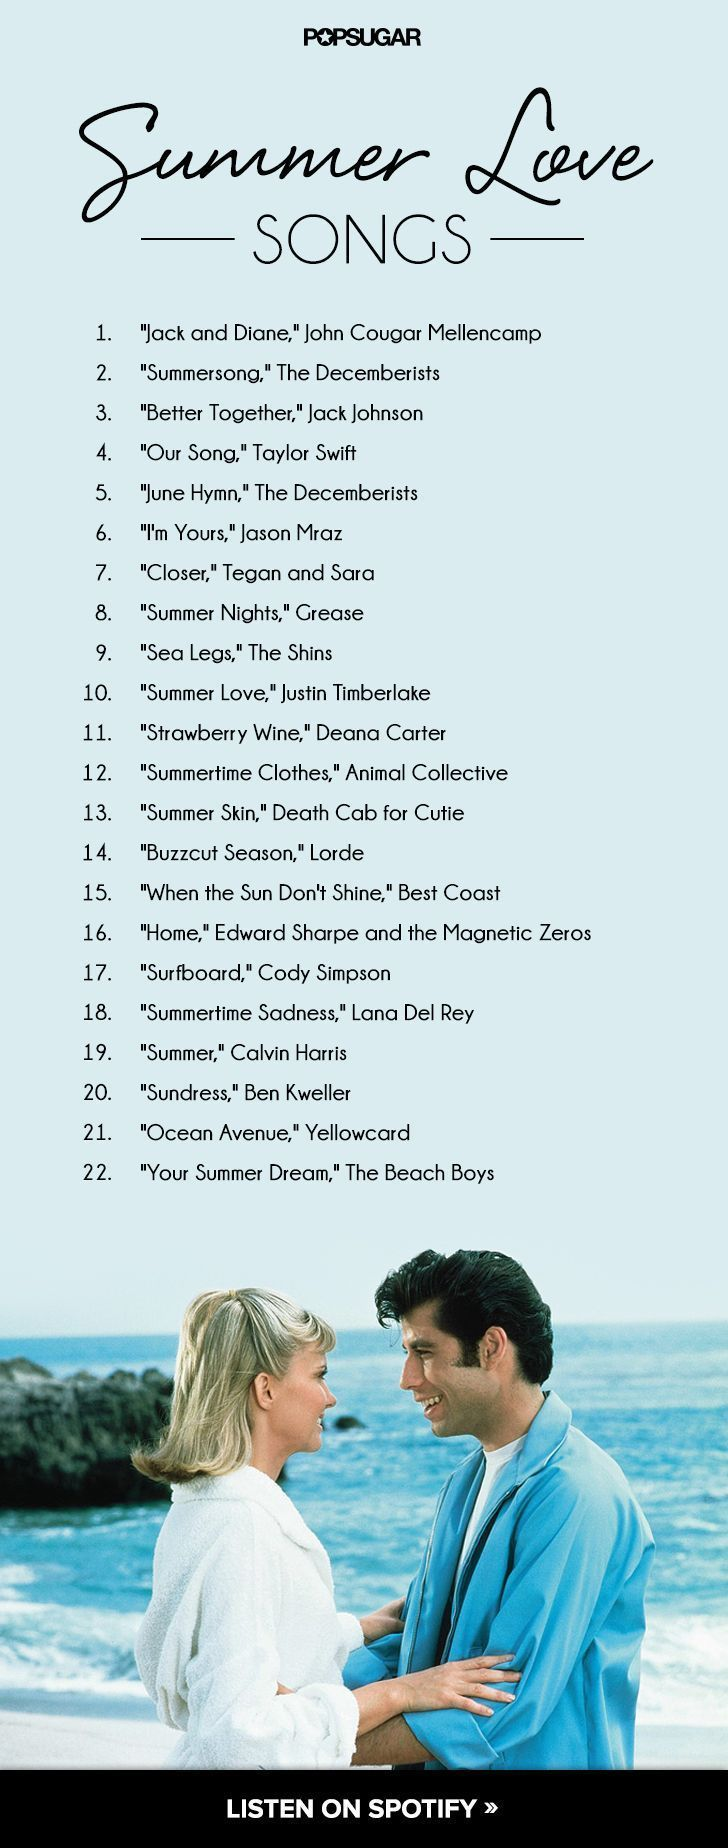 This is a Spotify playlist that has Summer love songs spanning multiple genres a... - #genres #Love #multiple #playlist #songs #spanning #Spotify #summer